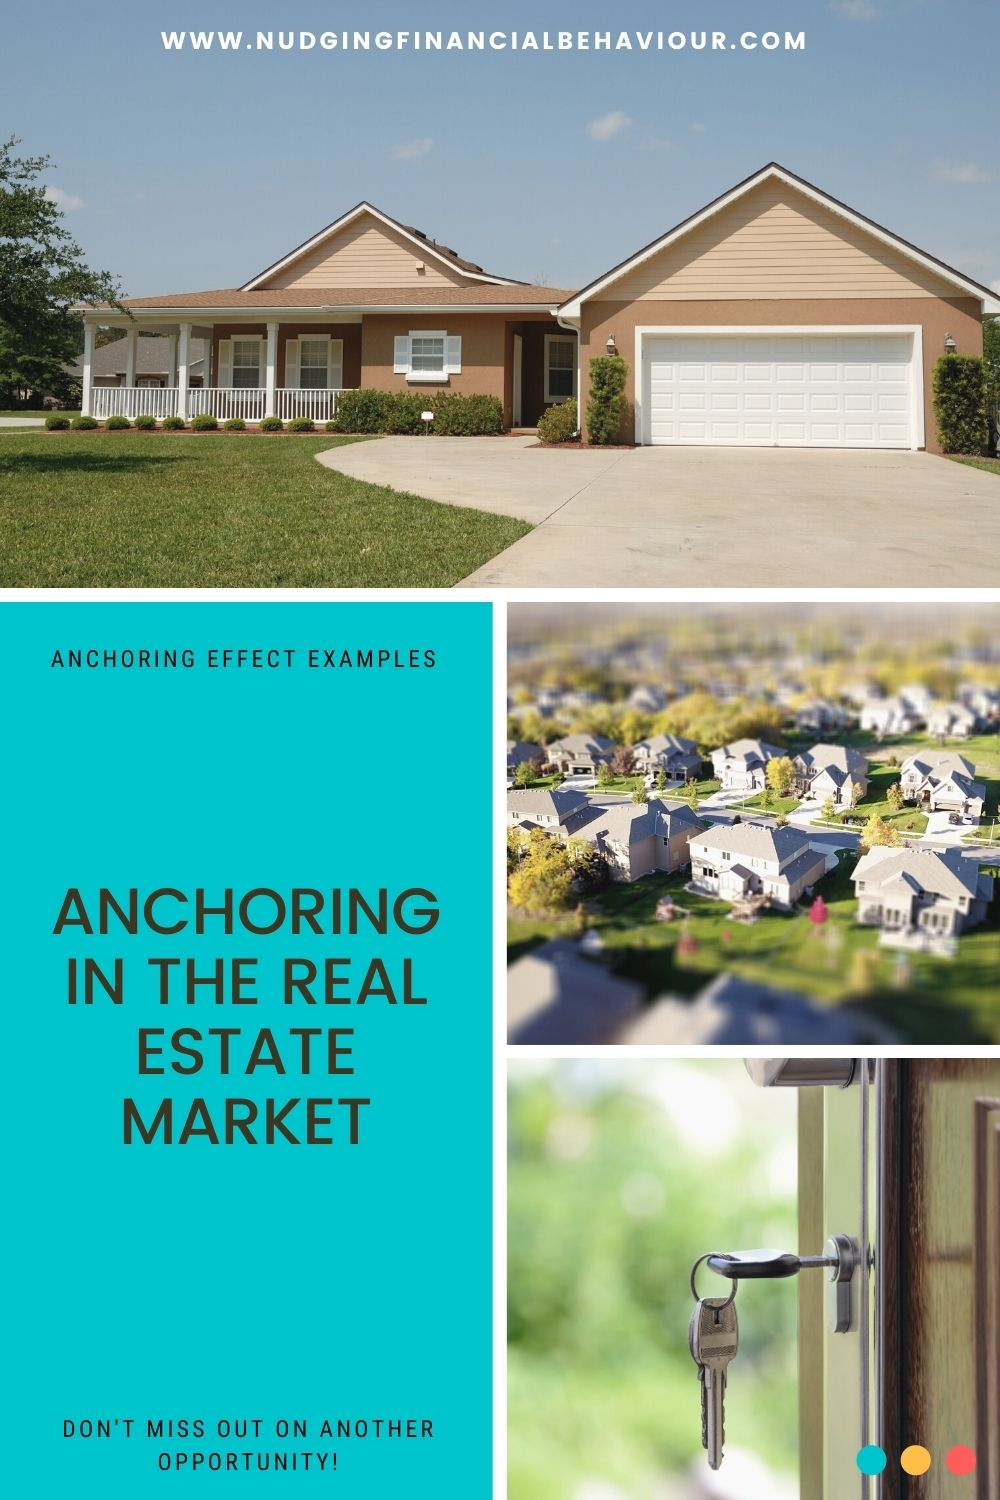 Anchoring in real estate